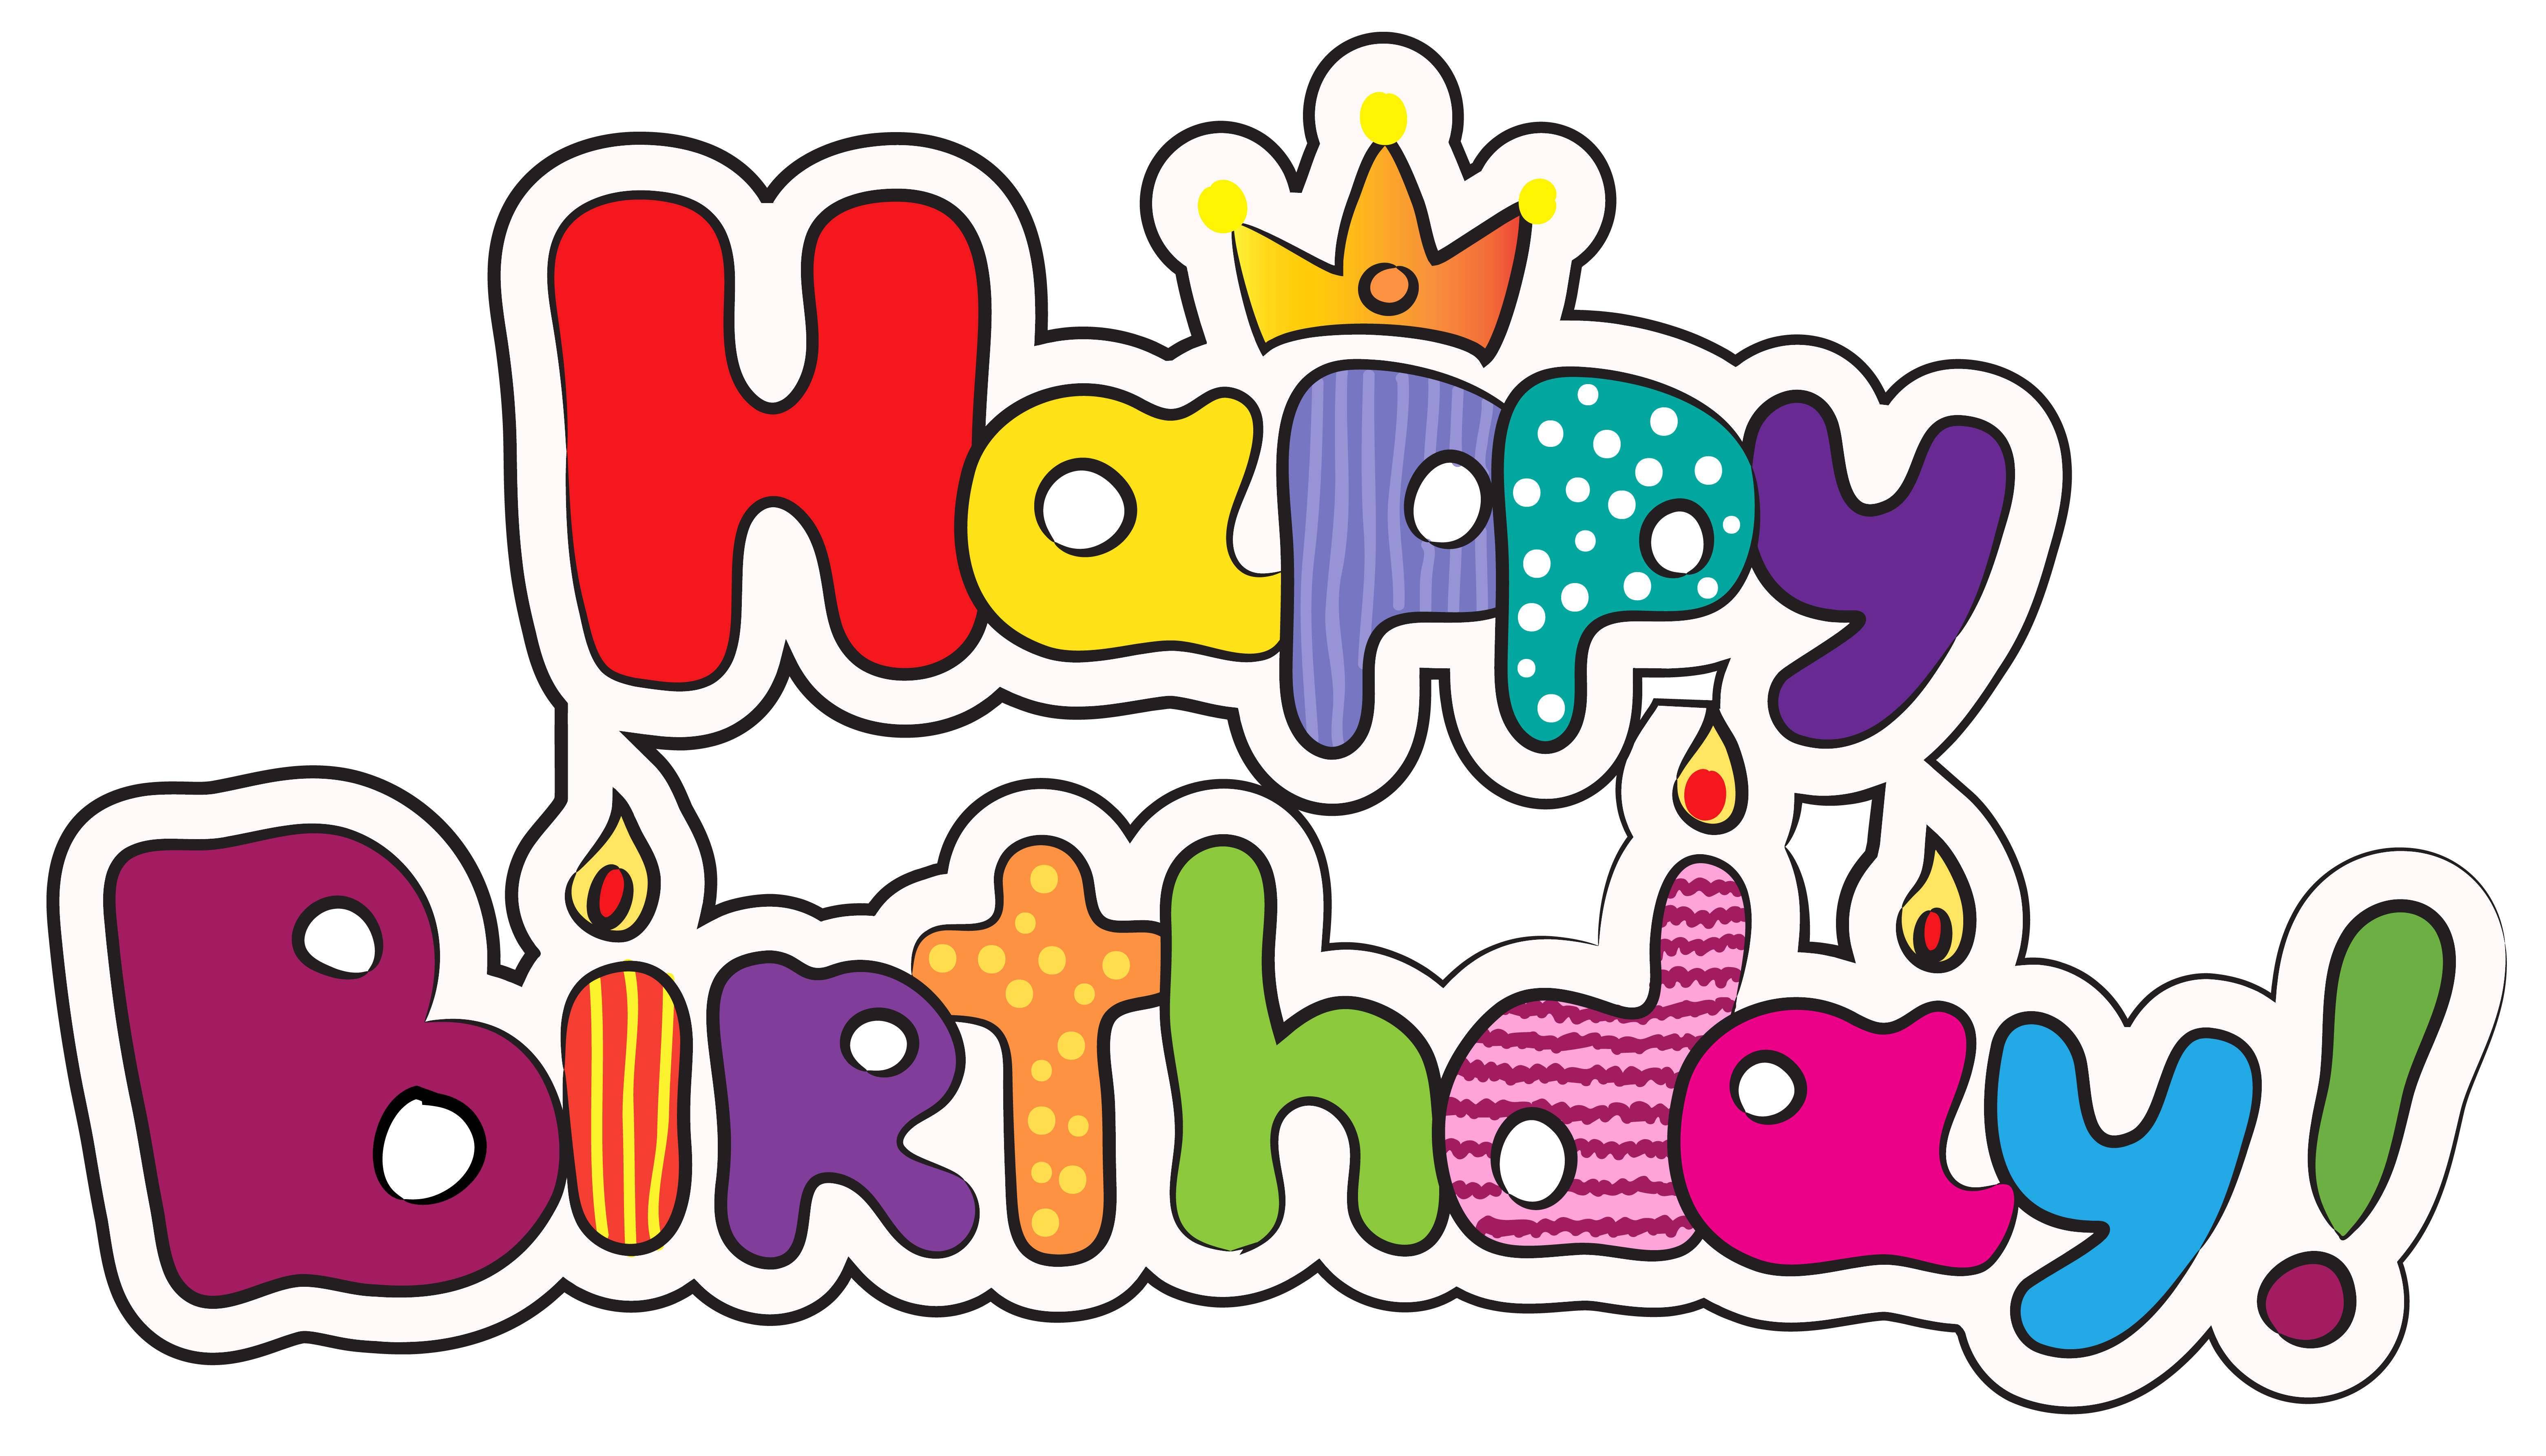 Spring happy birthday clipart png black and white download Clipart spring happy birthday, Clipart spring happy birthday ... png black and white download